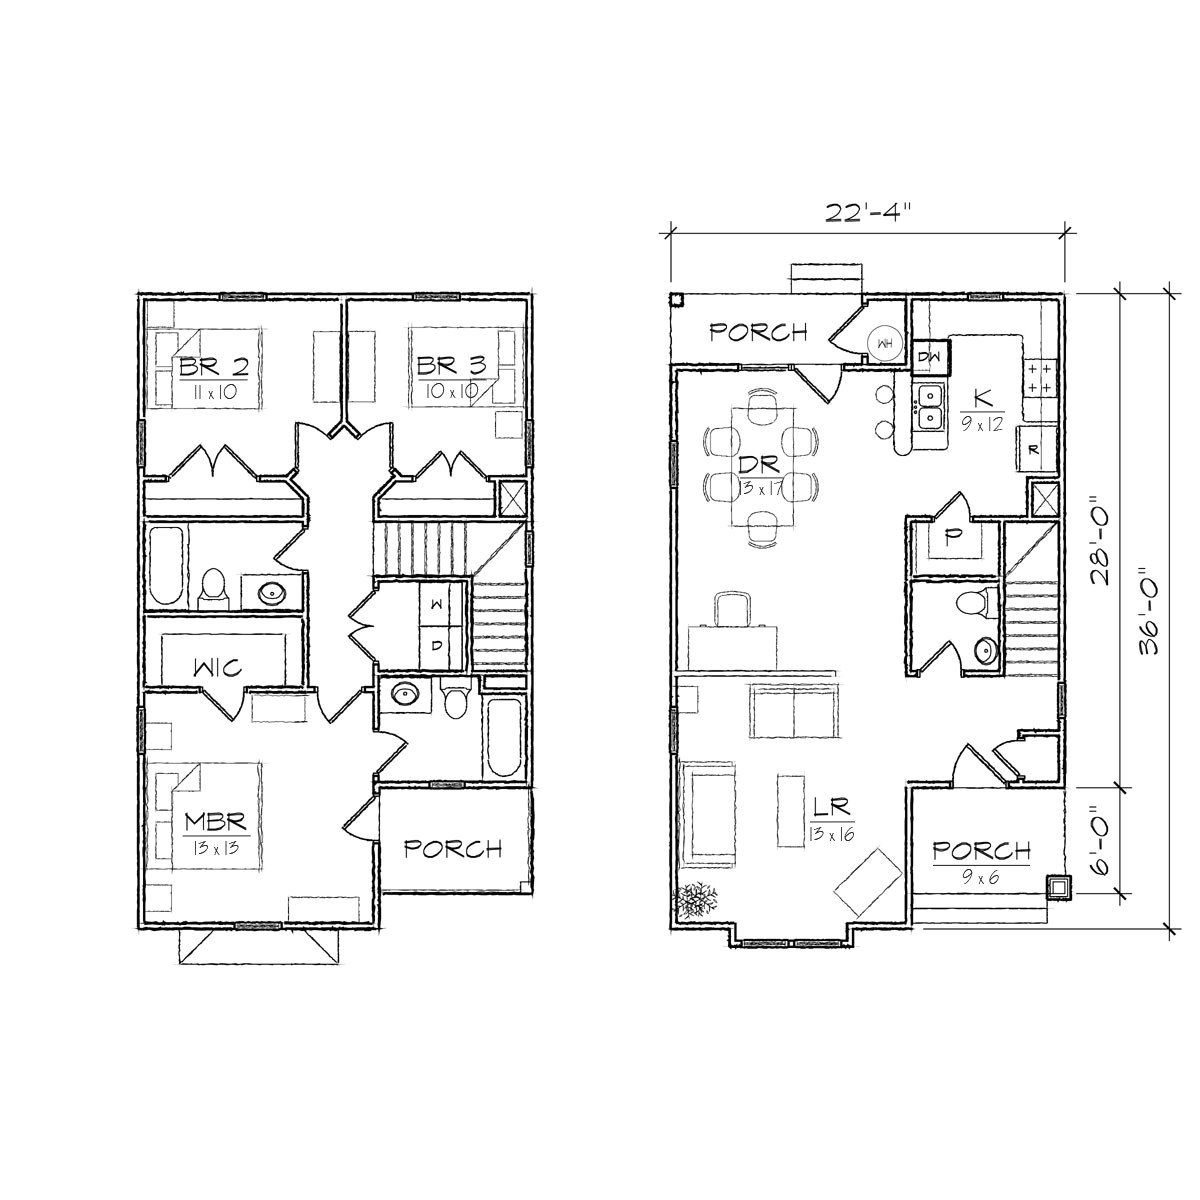 House Plans for A Small Lot Small House Plans for Narrow Lot Home Deco Plans